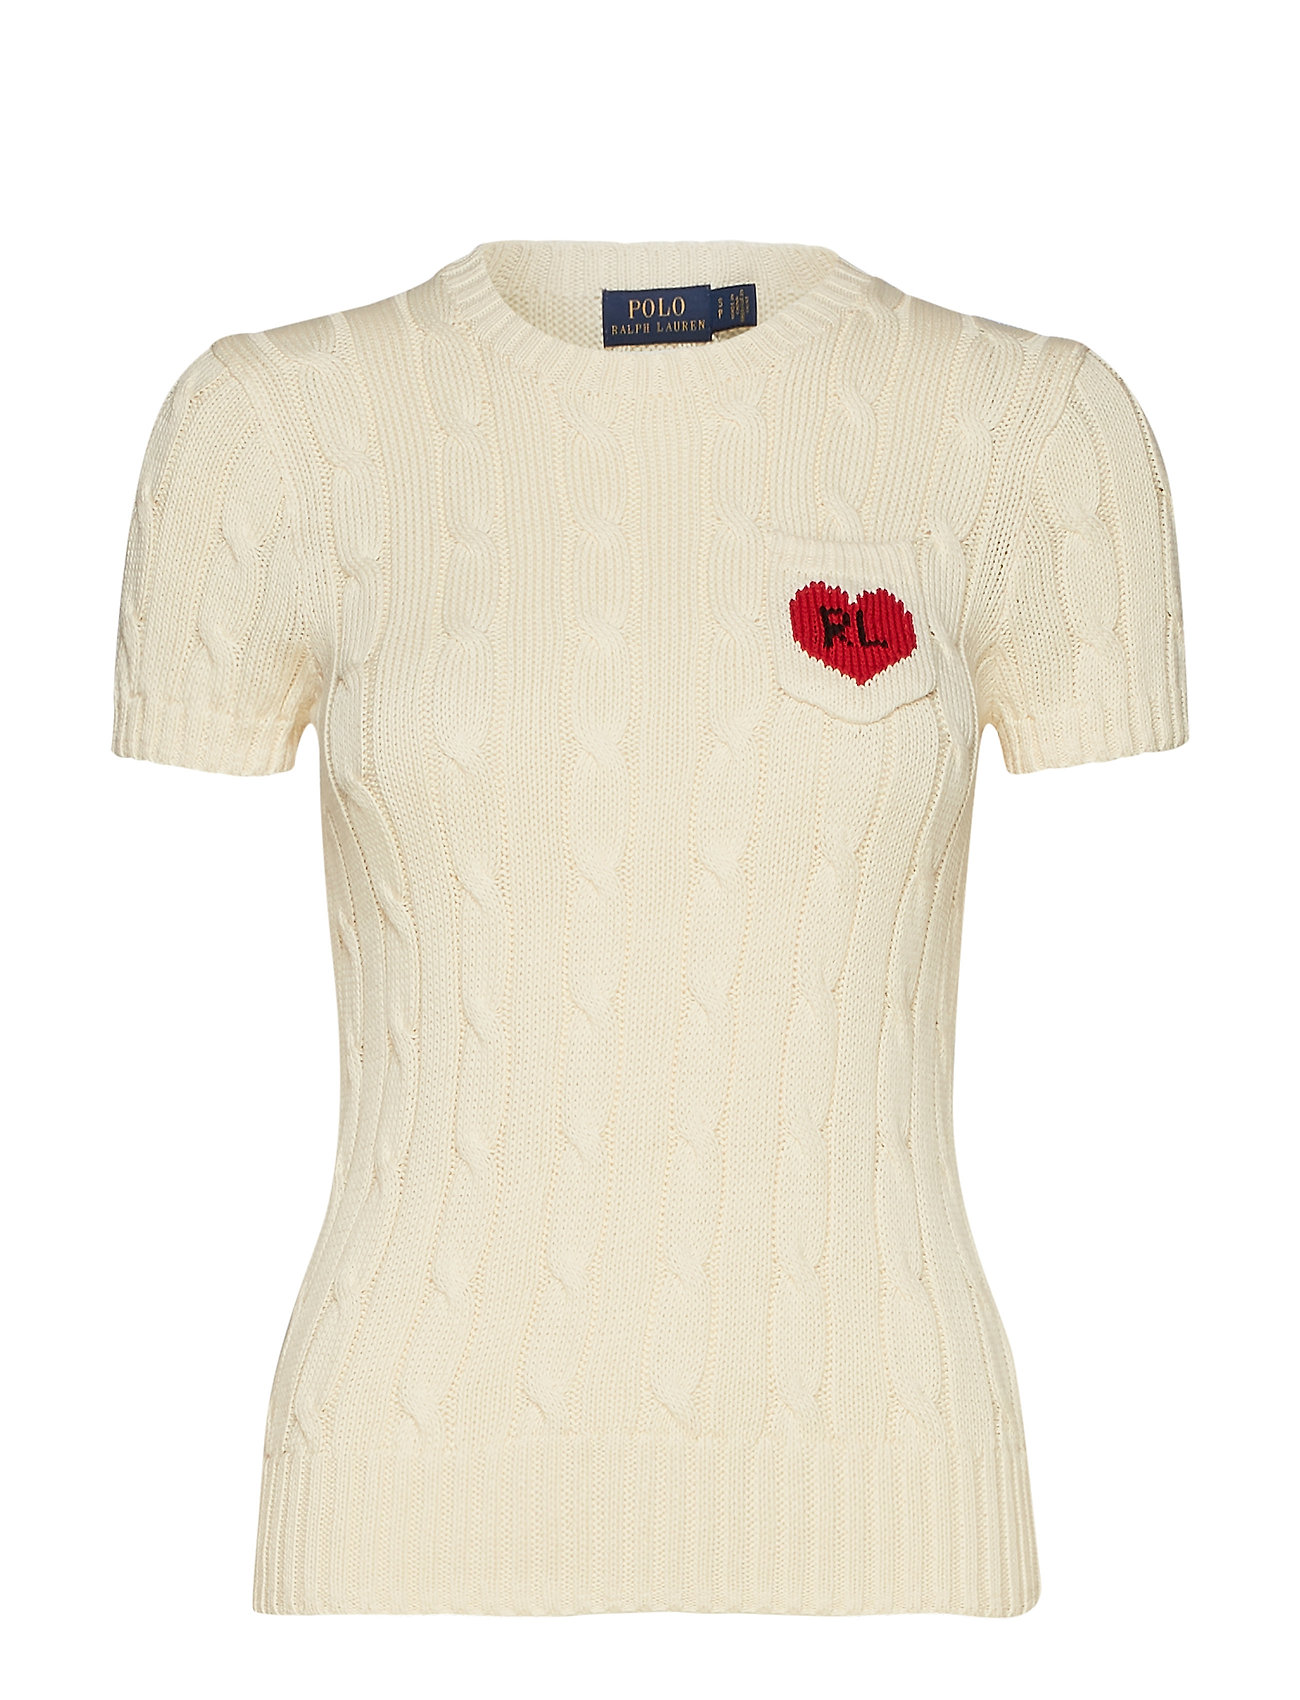 Polo Ralph Lauren RL Heart Short-Sleeve Sweater - CREAM W/ RED